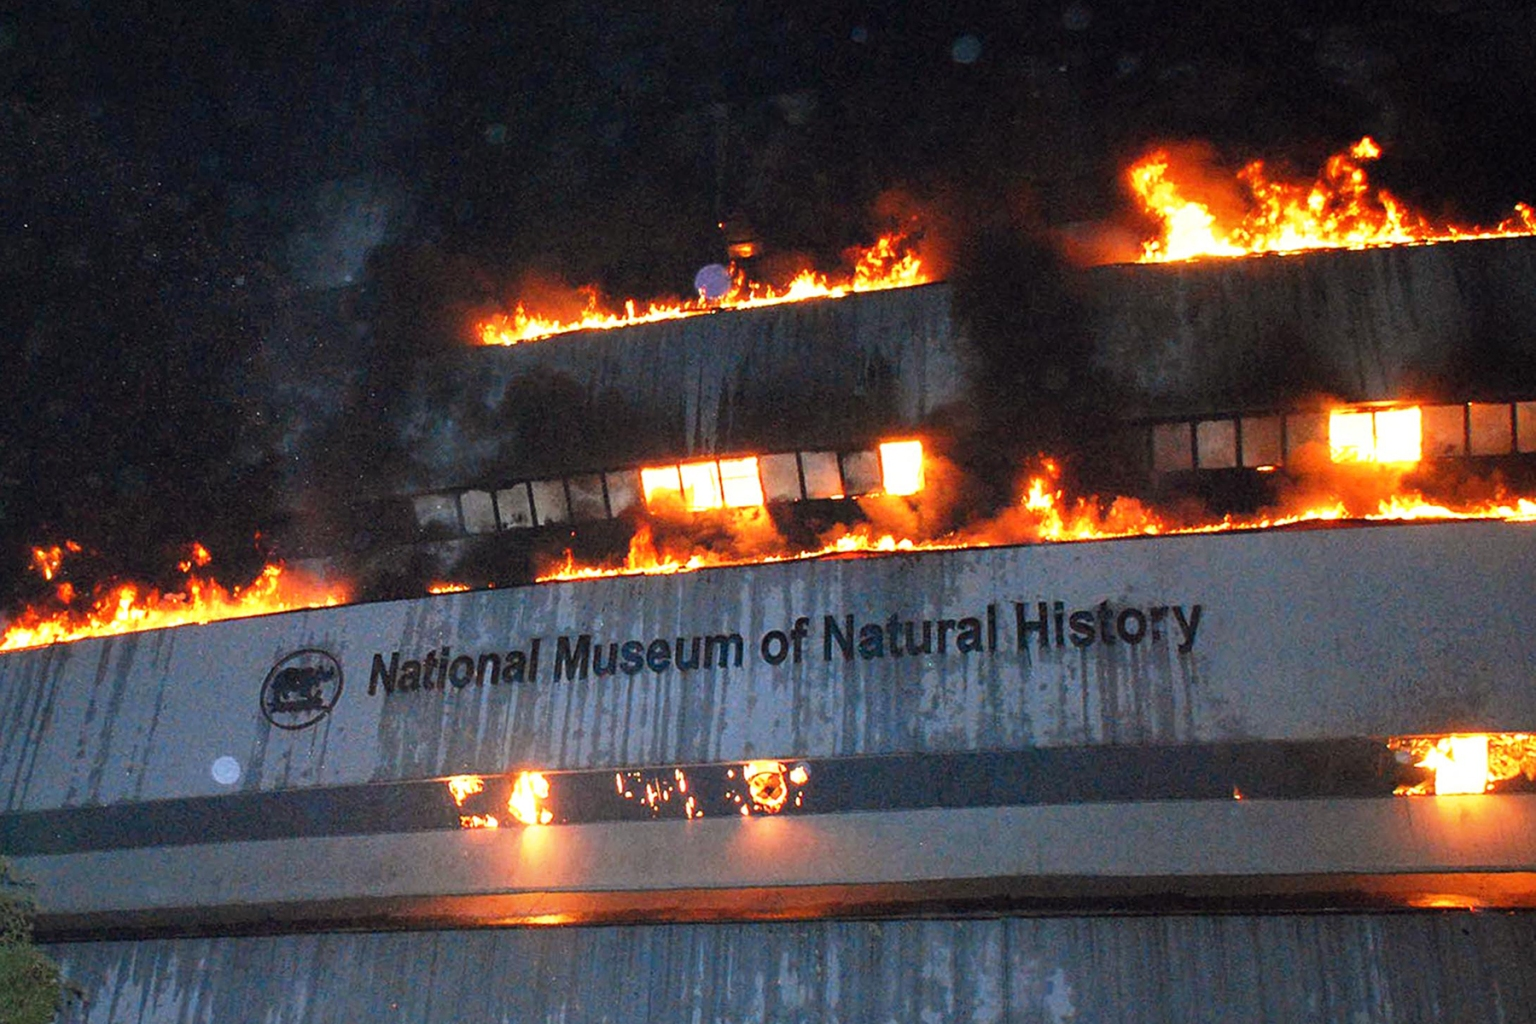 India's National Museum of Natural History is destroyed by a fire in New Delhi on April 26, 2016. (Arvind Yadav/Hindustan Times via Getty Images)